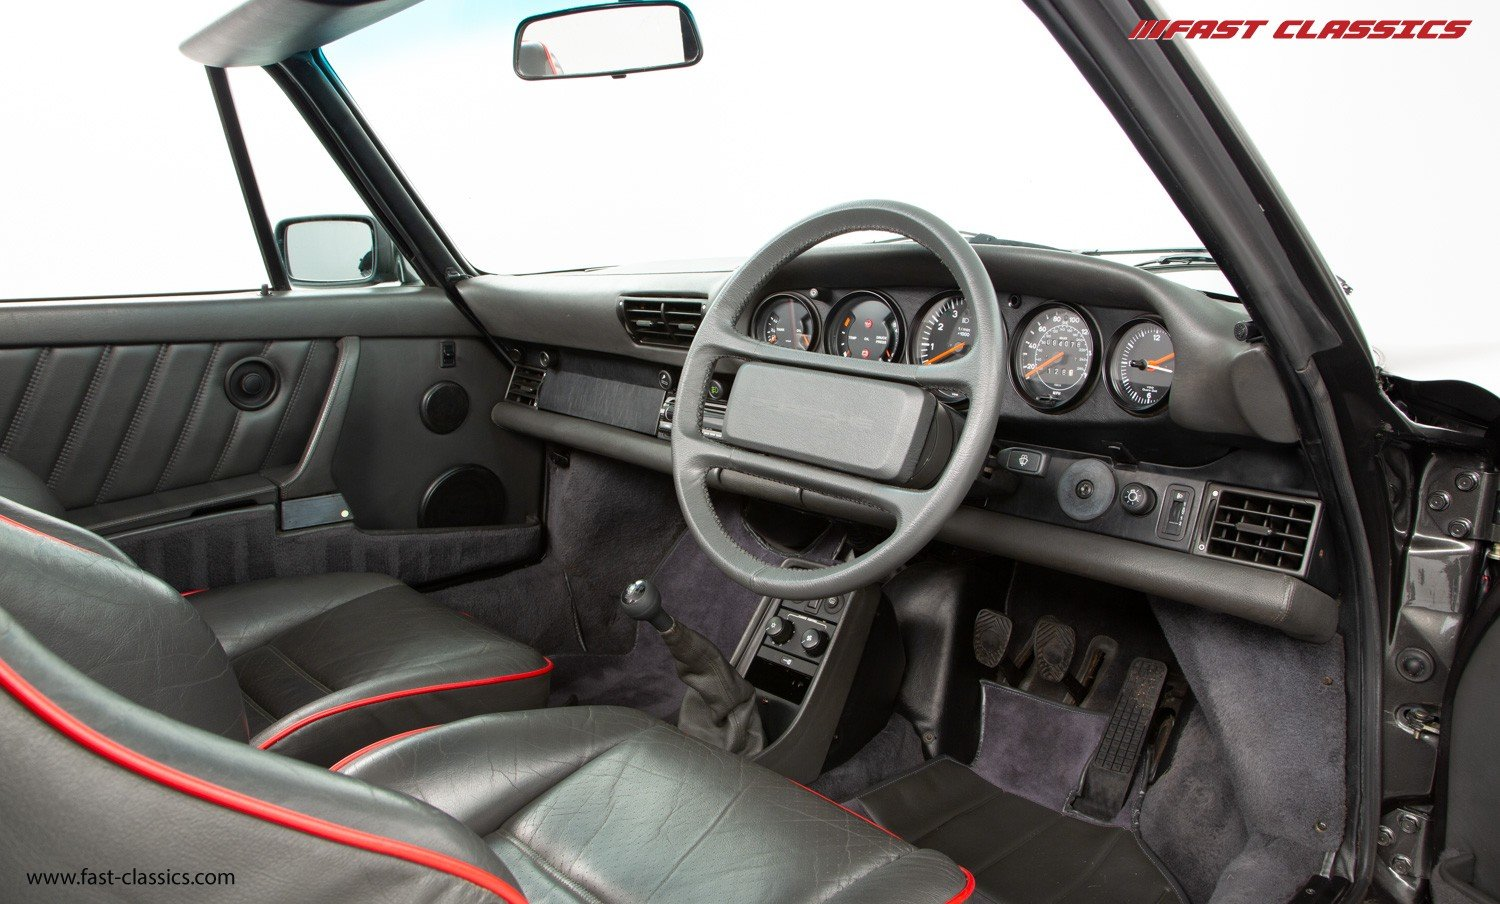 1990 PORSCHE 911 TURBO CABR // SLATE GREY // G50 GEARBOX  For Sale (picture 4 of 6)